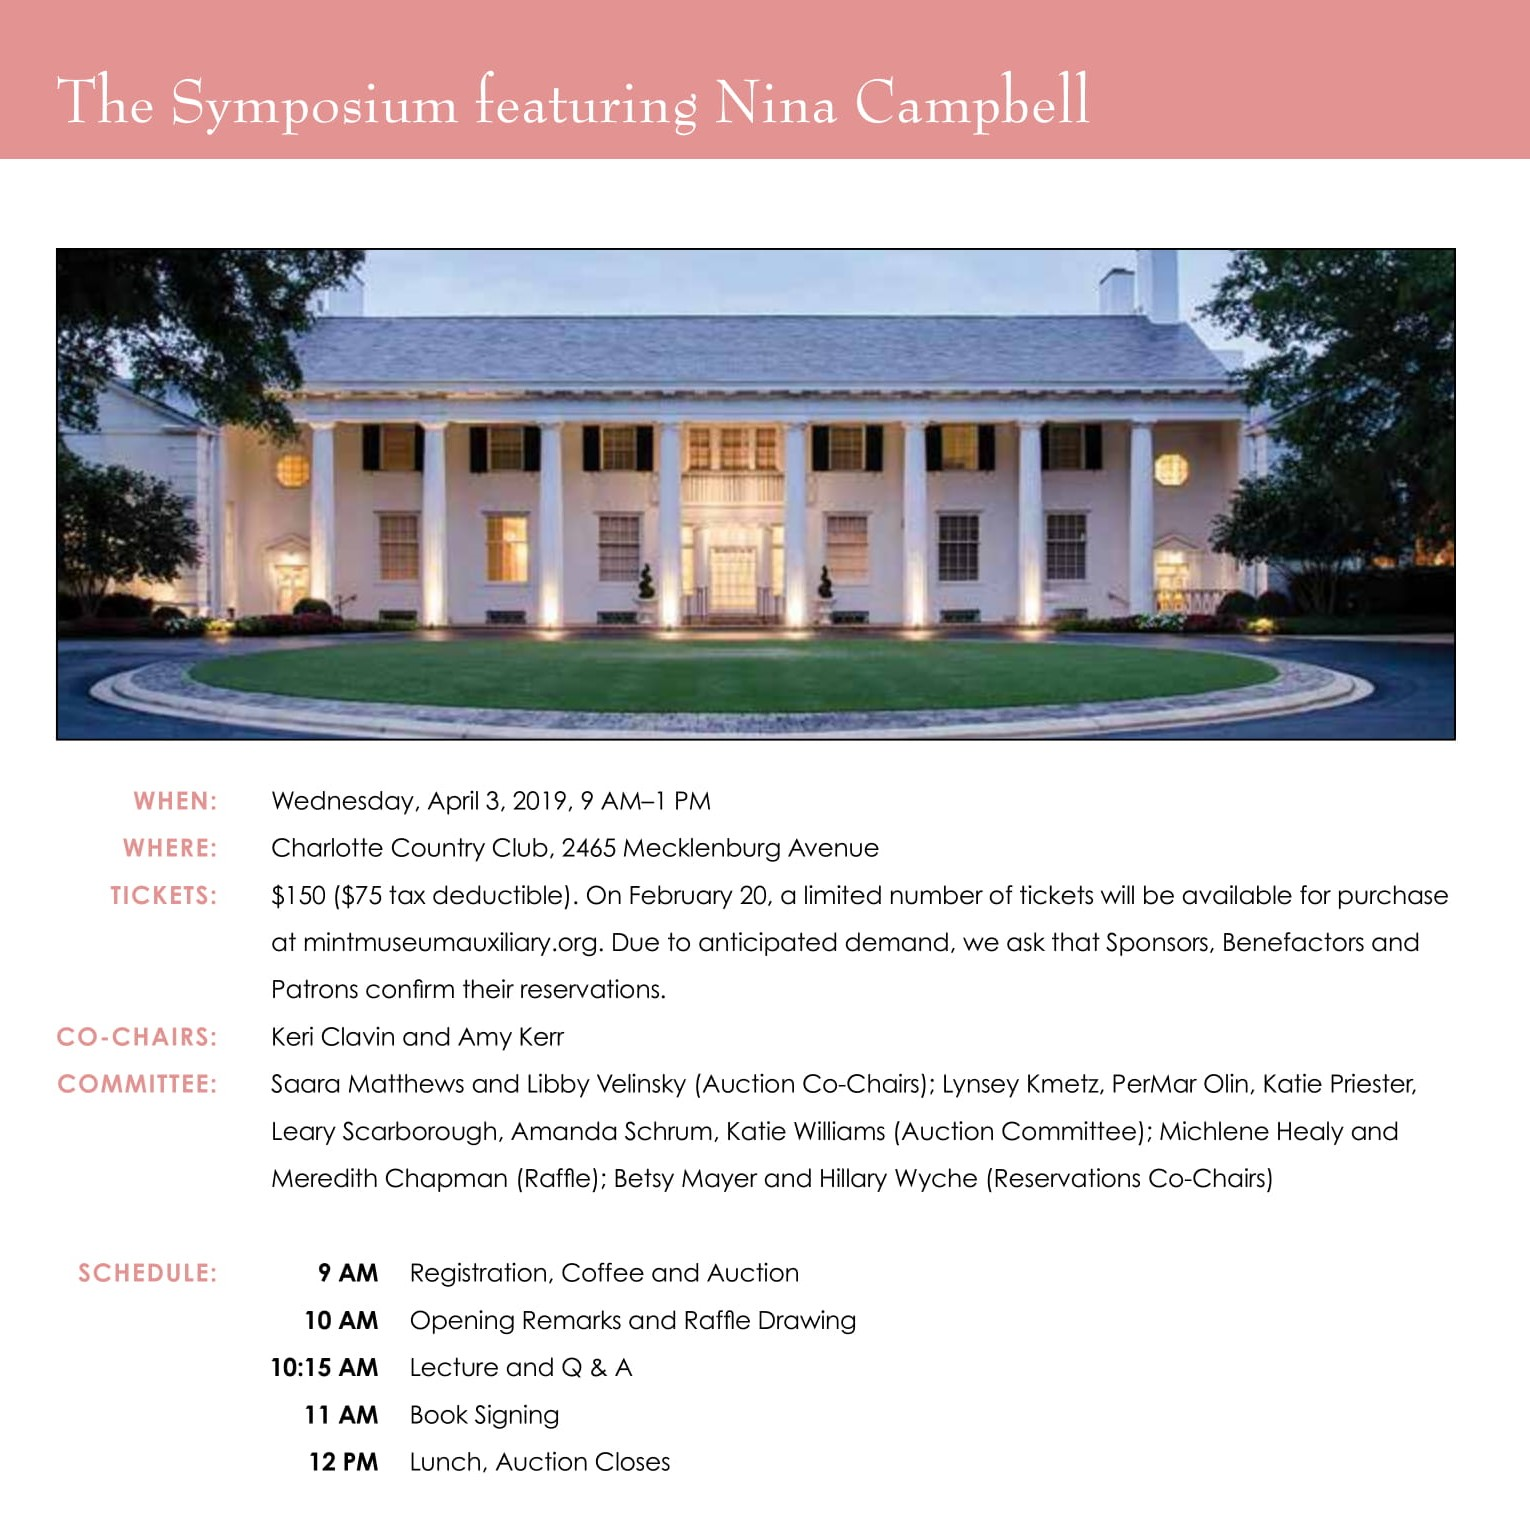 Spring Symposium with Nina Campbell